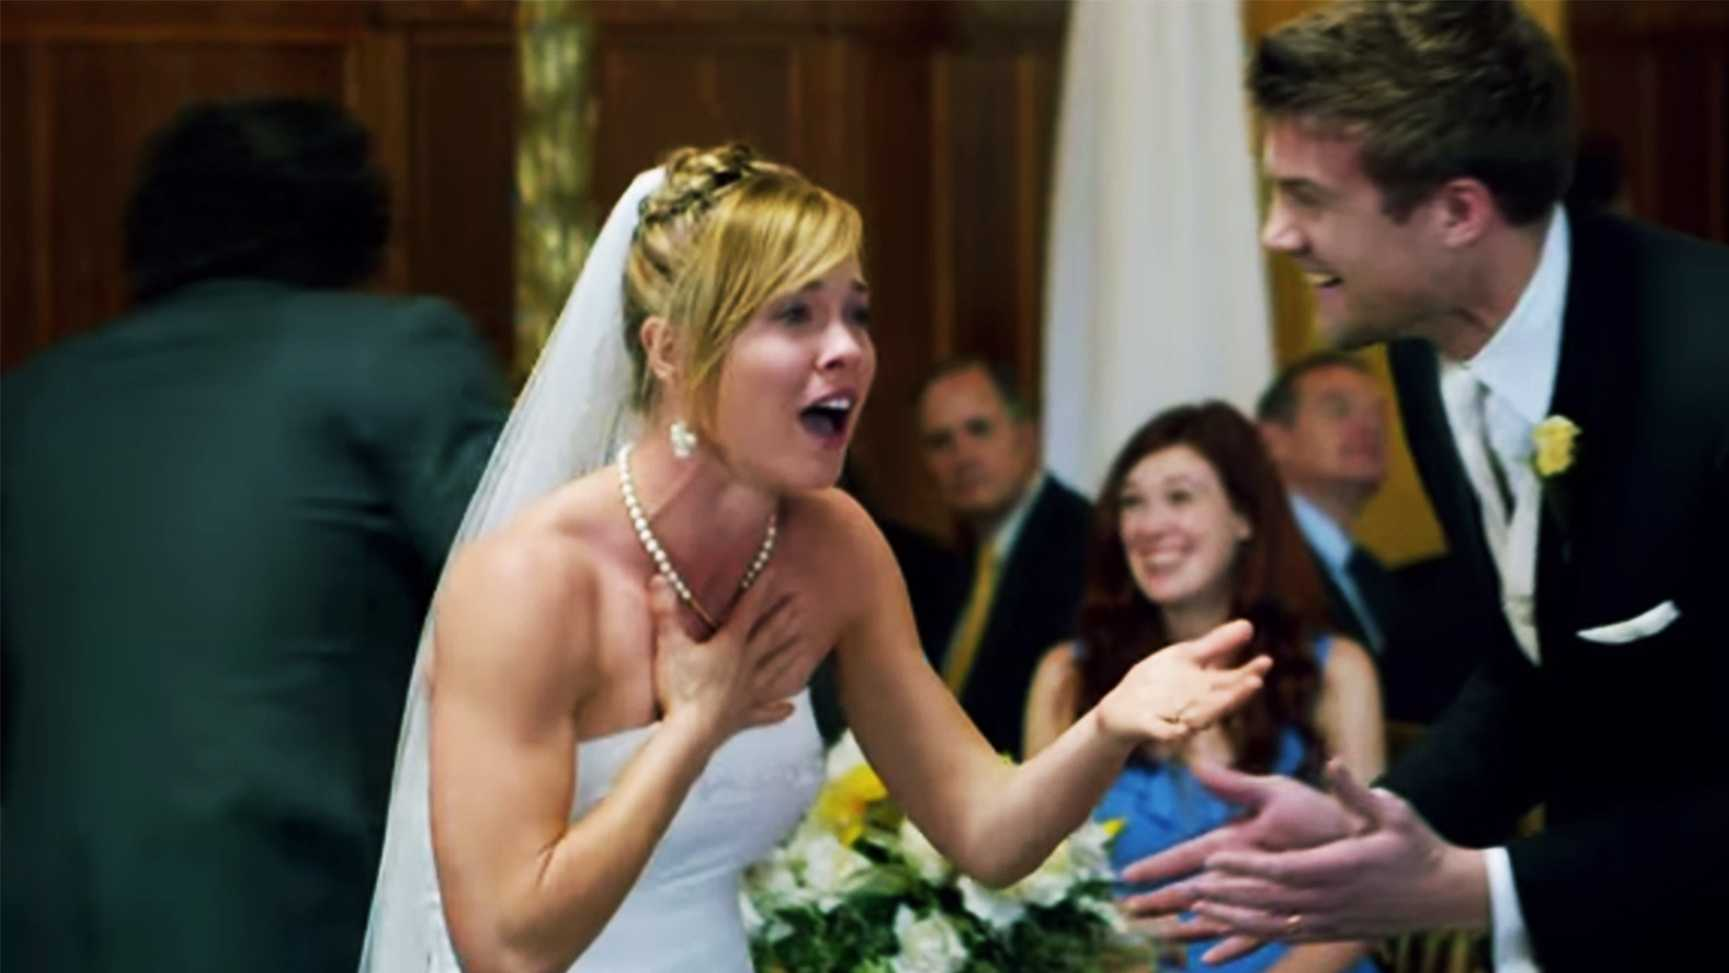 A bride can't believe her eyes when she sees Maroon 5 at her wedding.